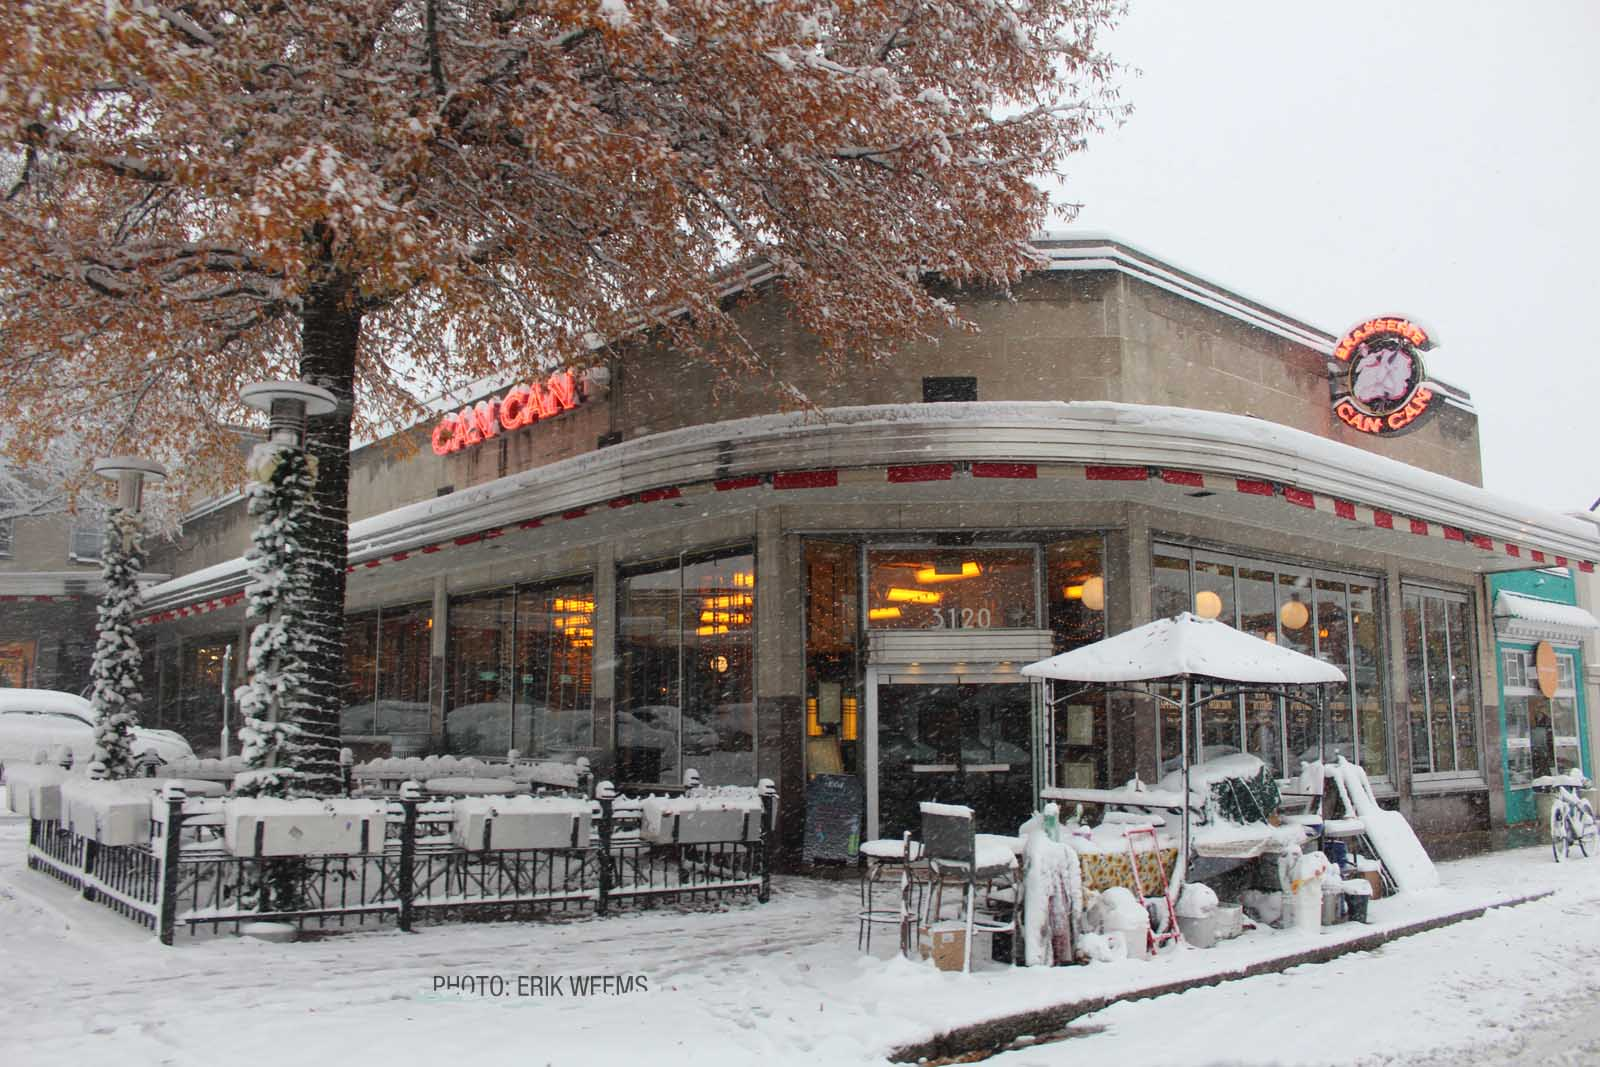 Enlarged winter photo - The Can Can Restarant in the Snow - Richmond Virginia